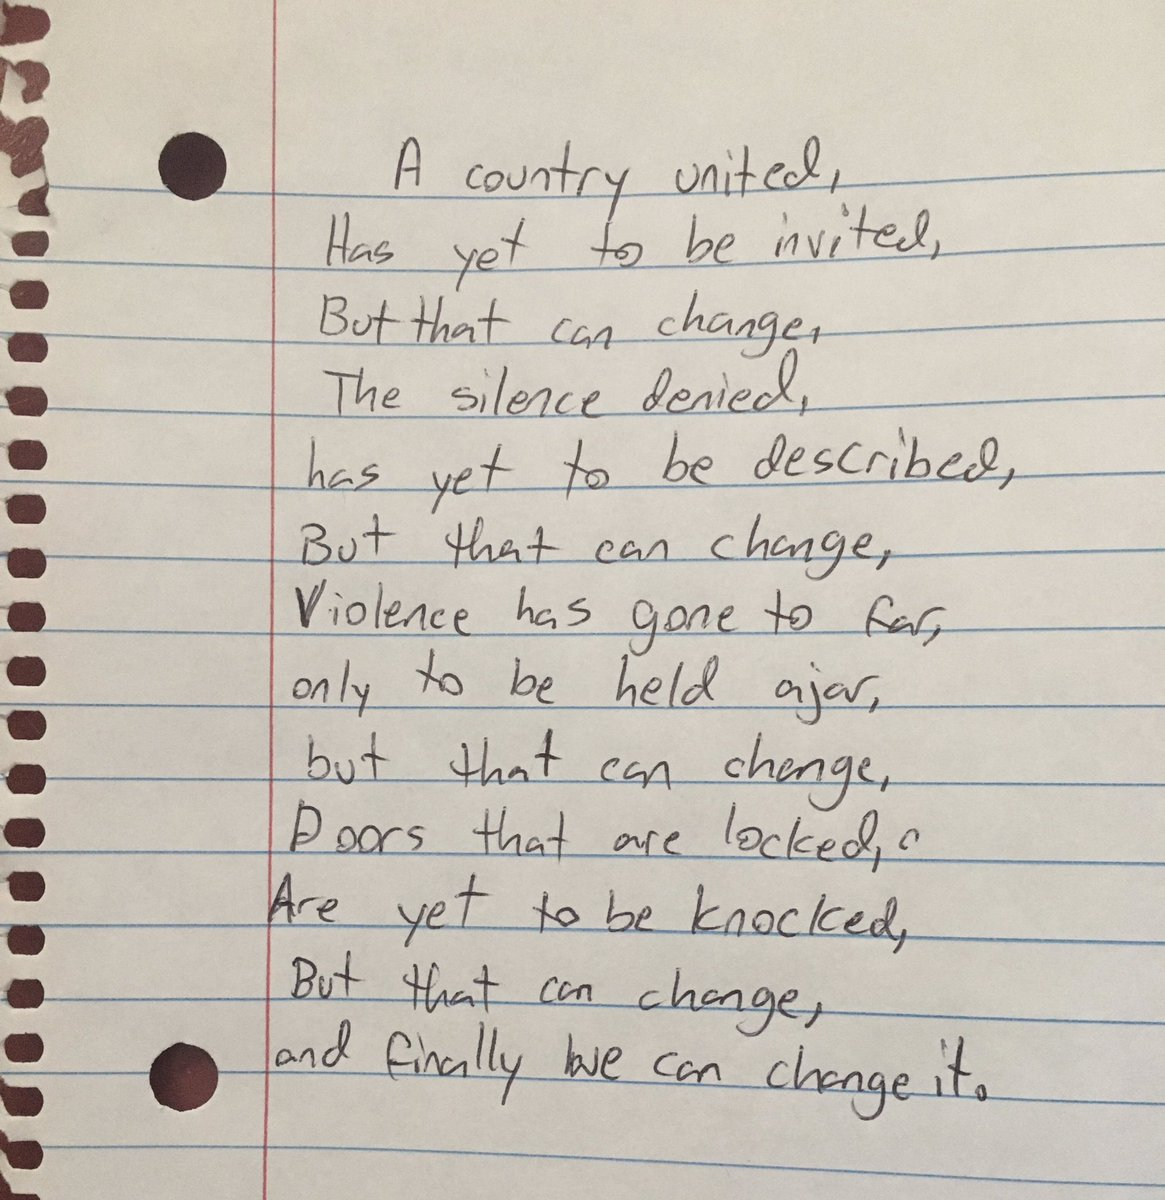 @dionnewarwick My 10-year-old daughter wrote this. She was inspired by @TheAmandaGorman ❤️ #dionnewarwick